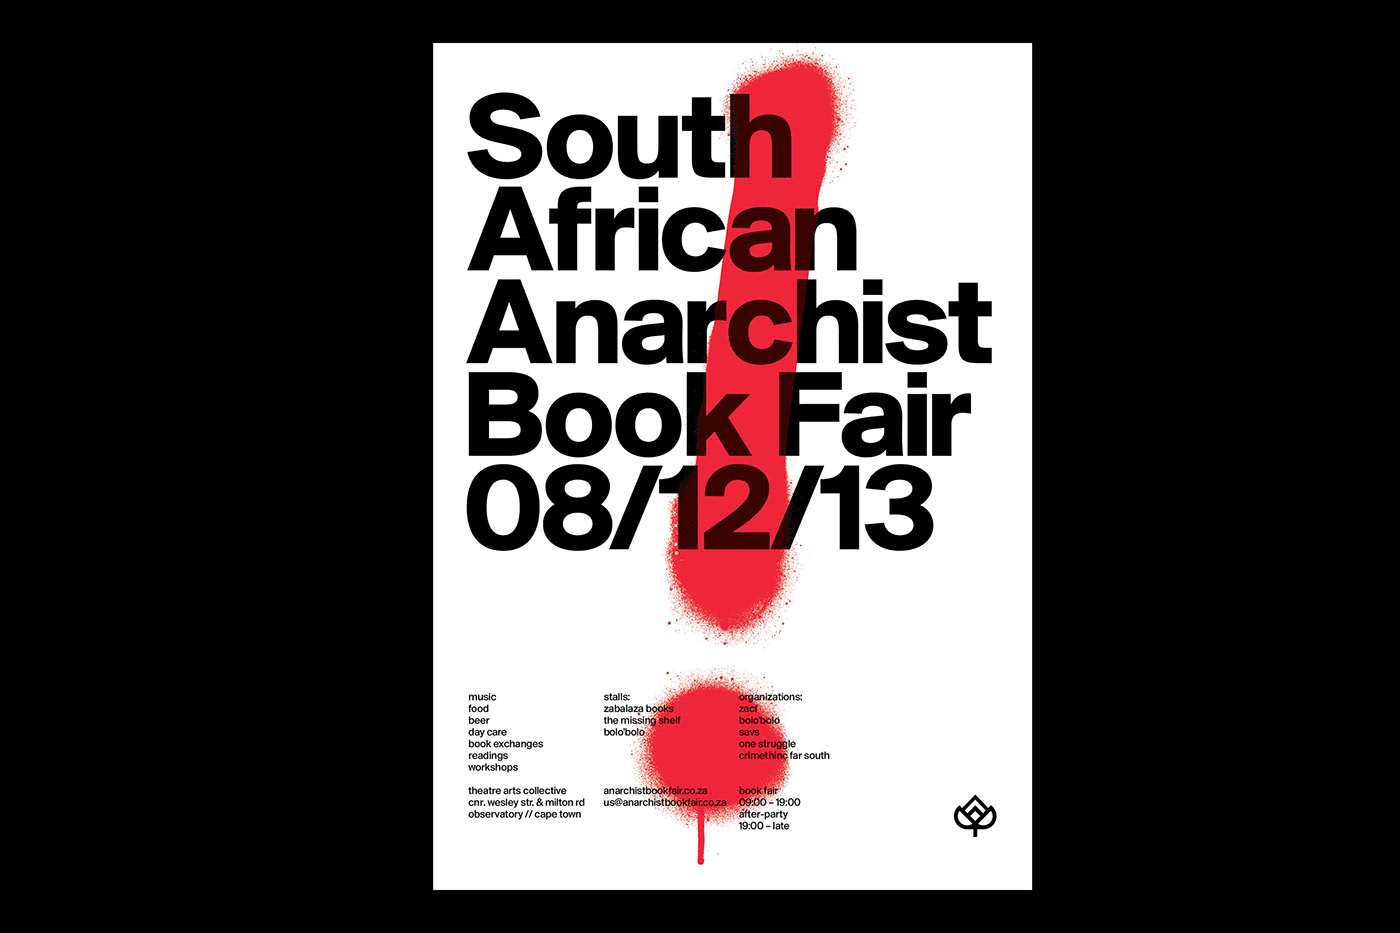 South African Anarchist Book Fair